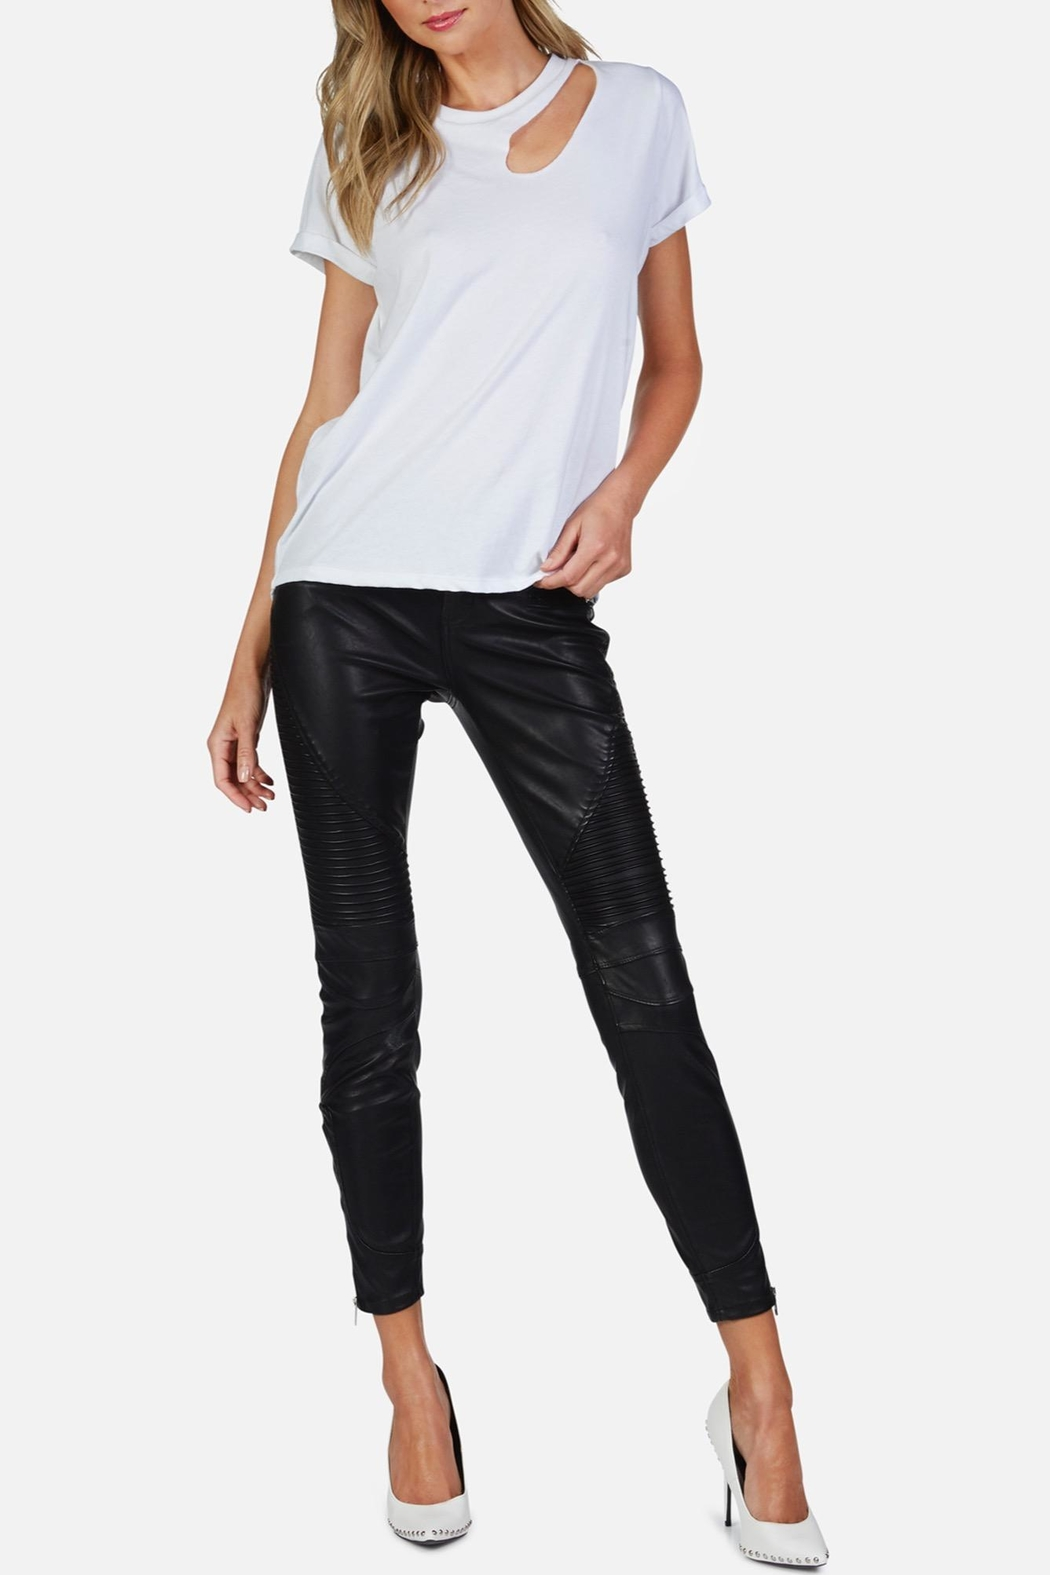 Michael Lauren Berkley Cut-Out Tee - Front Cropped Image